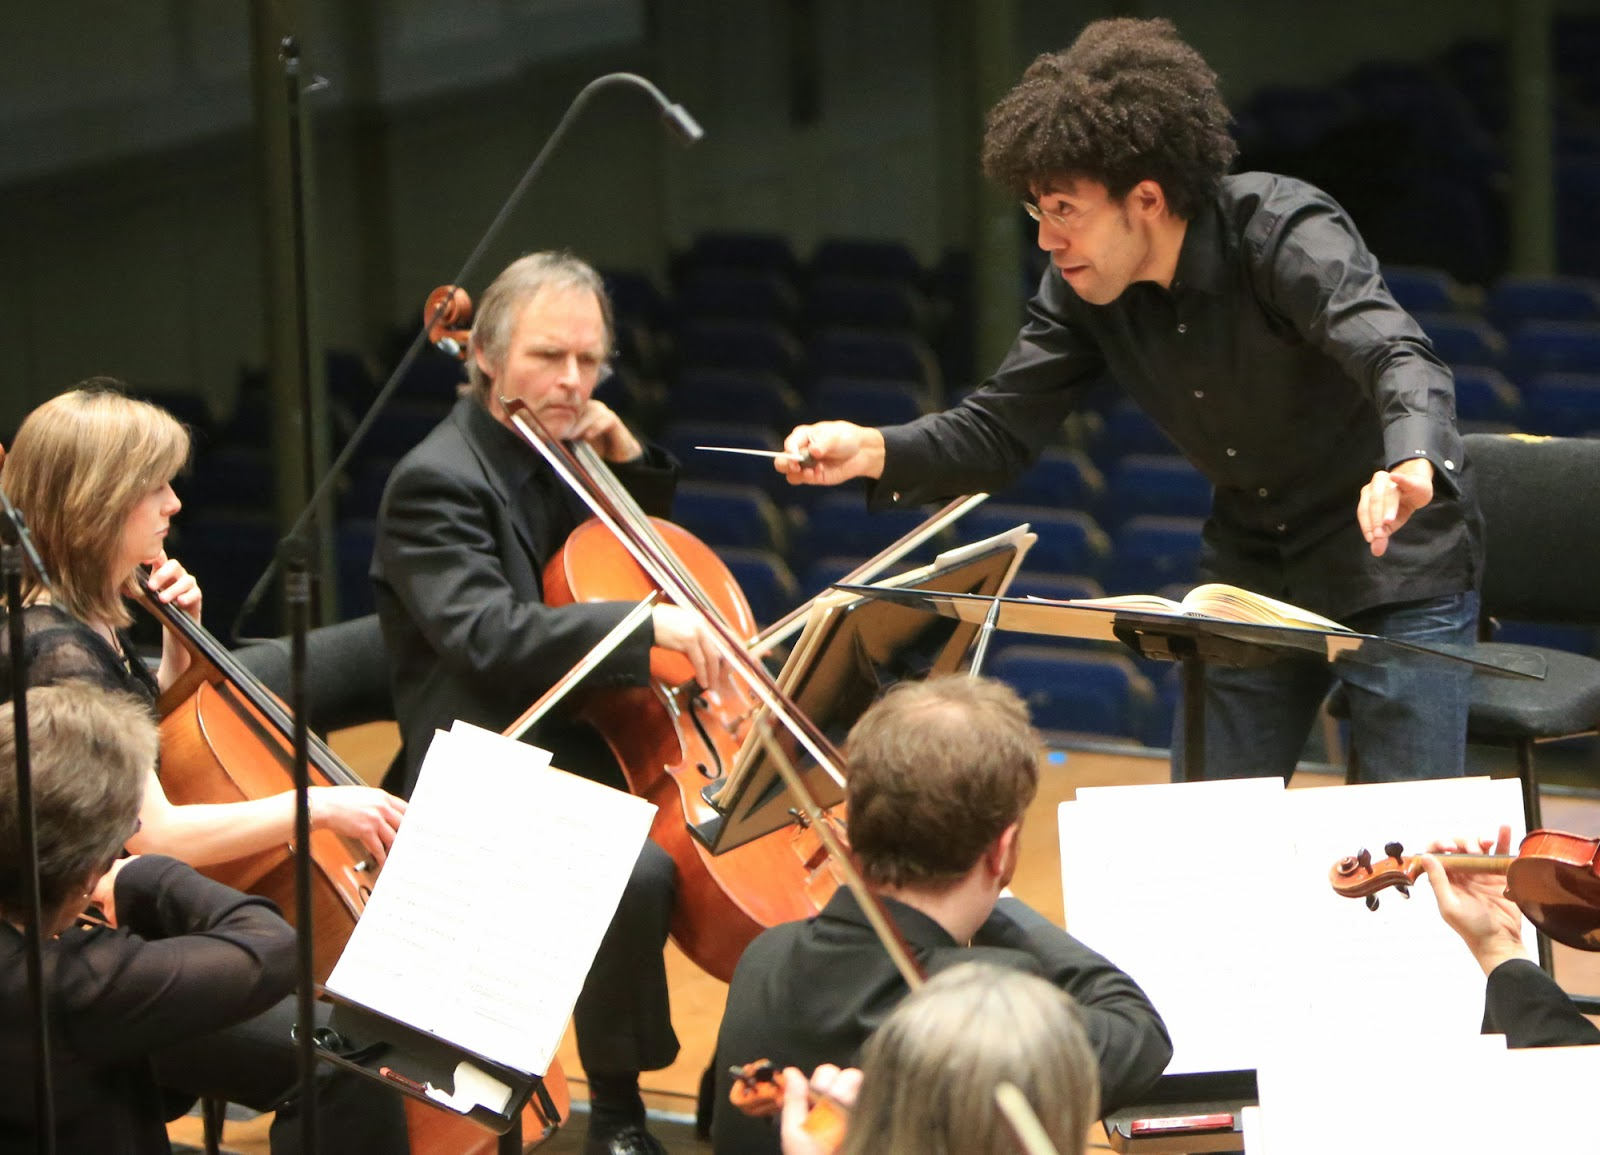 Alan in Belfast: New Ulster Orchestra season with open